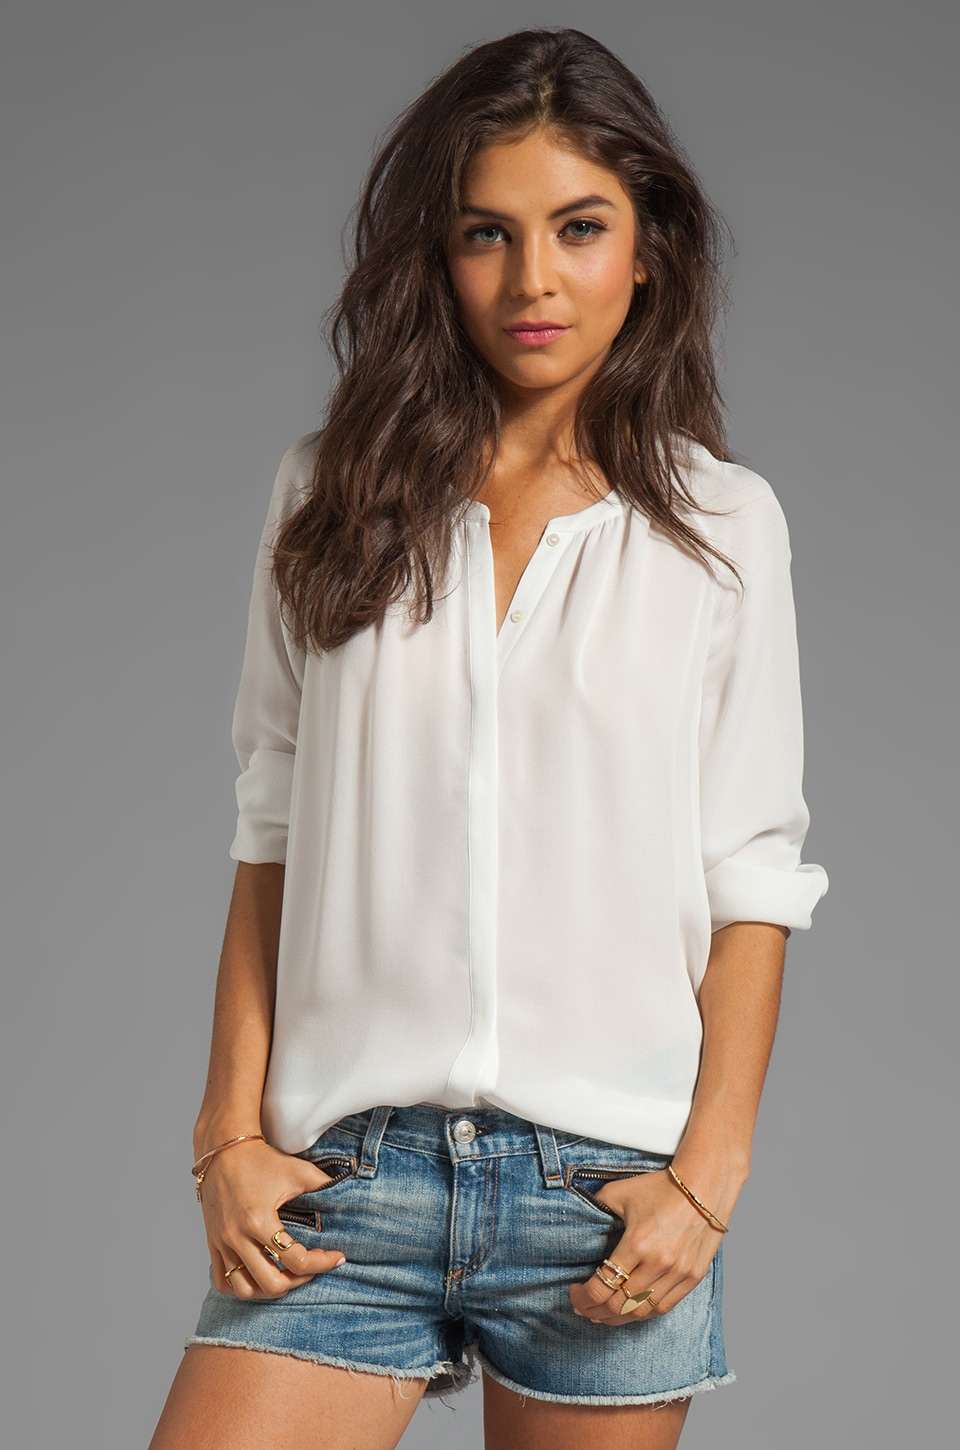 Joie Kade Blouse in Porcelain